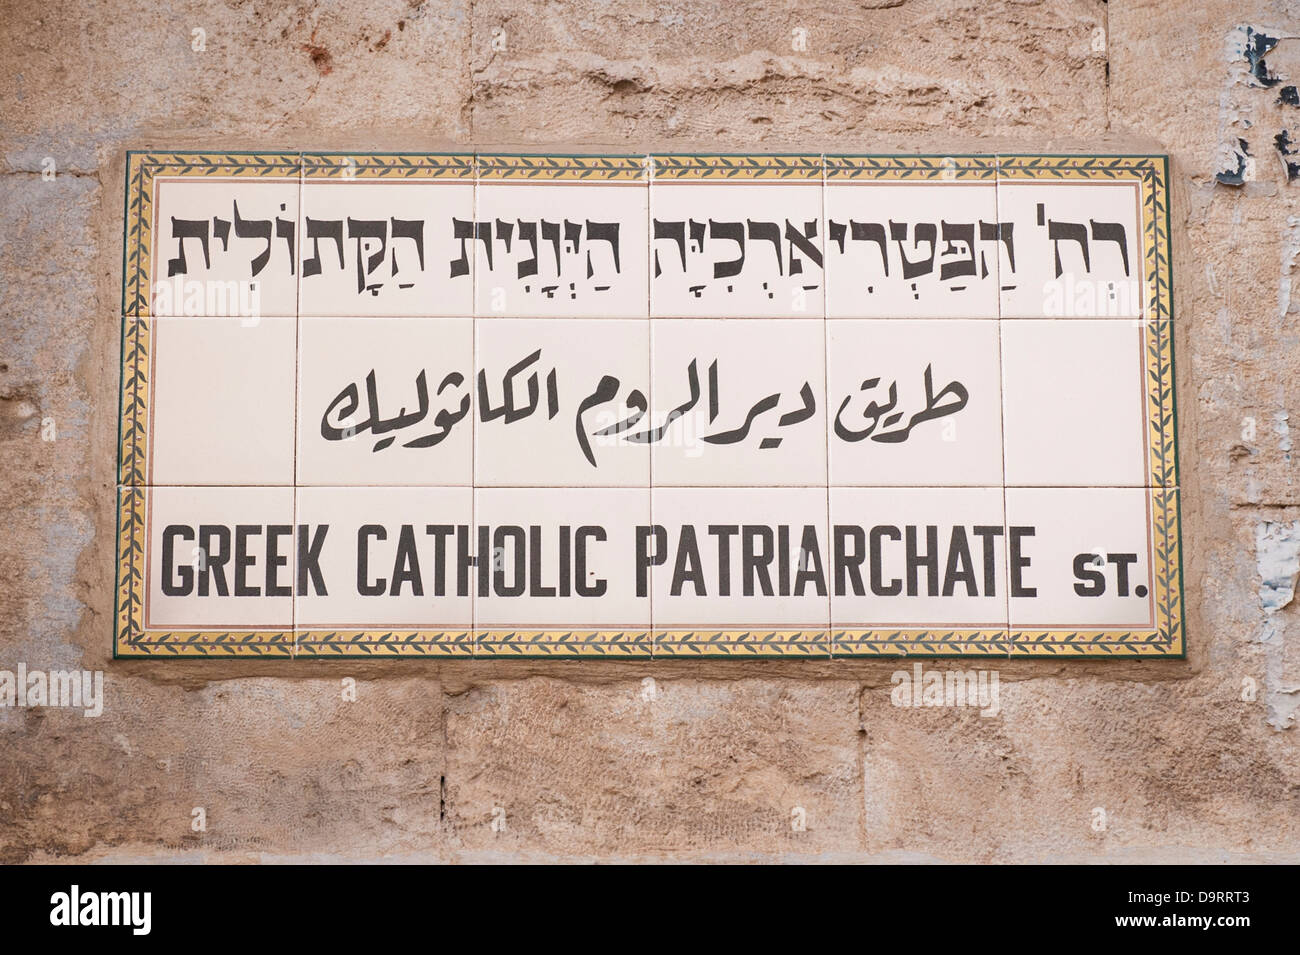 Israel Jerusalem Old City typical street sign Greek Catholic Patriarchate Street St Hebrew Ivrit Arabic English - Stock Image